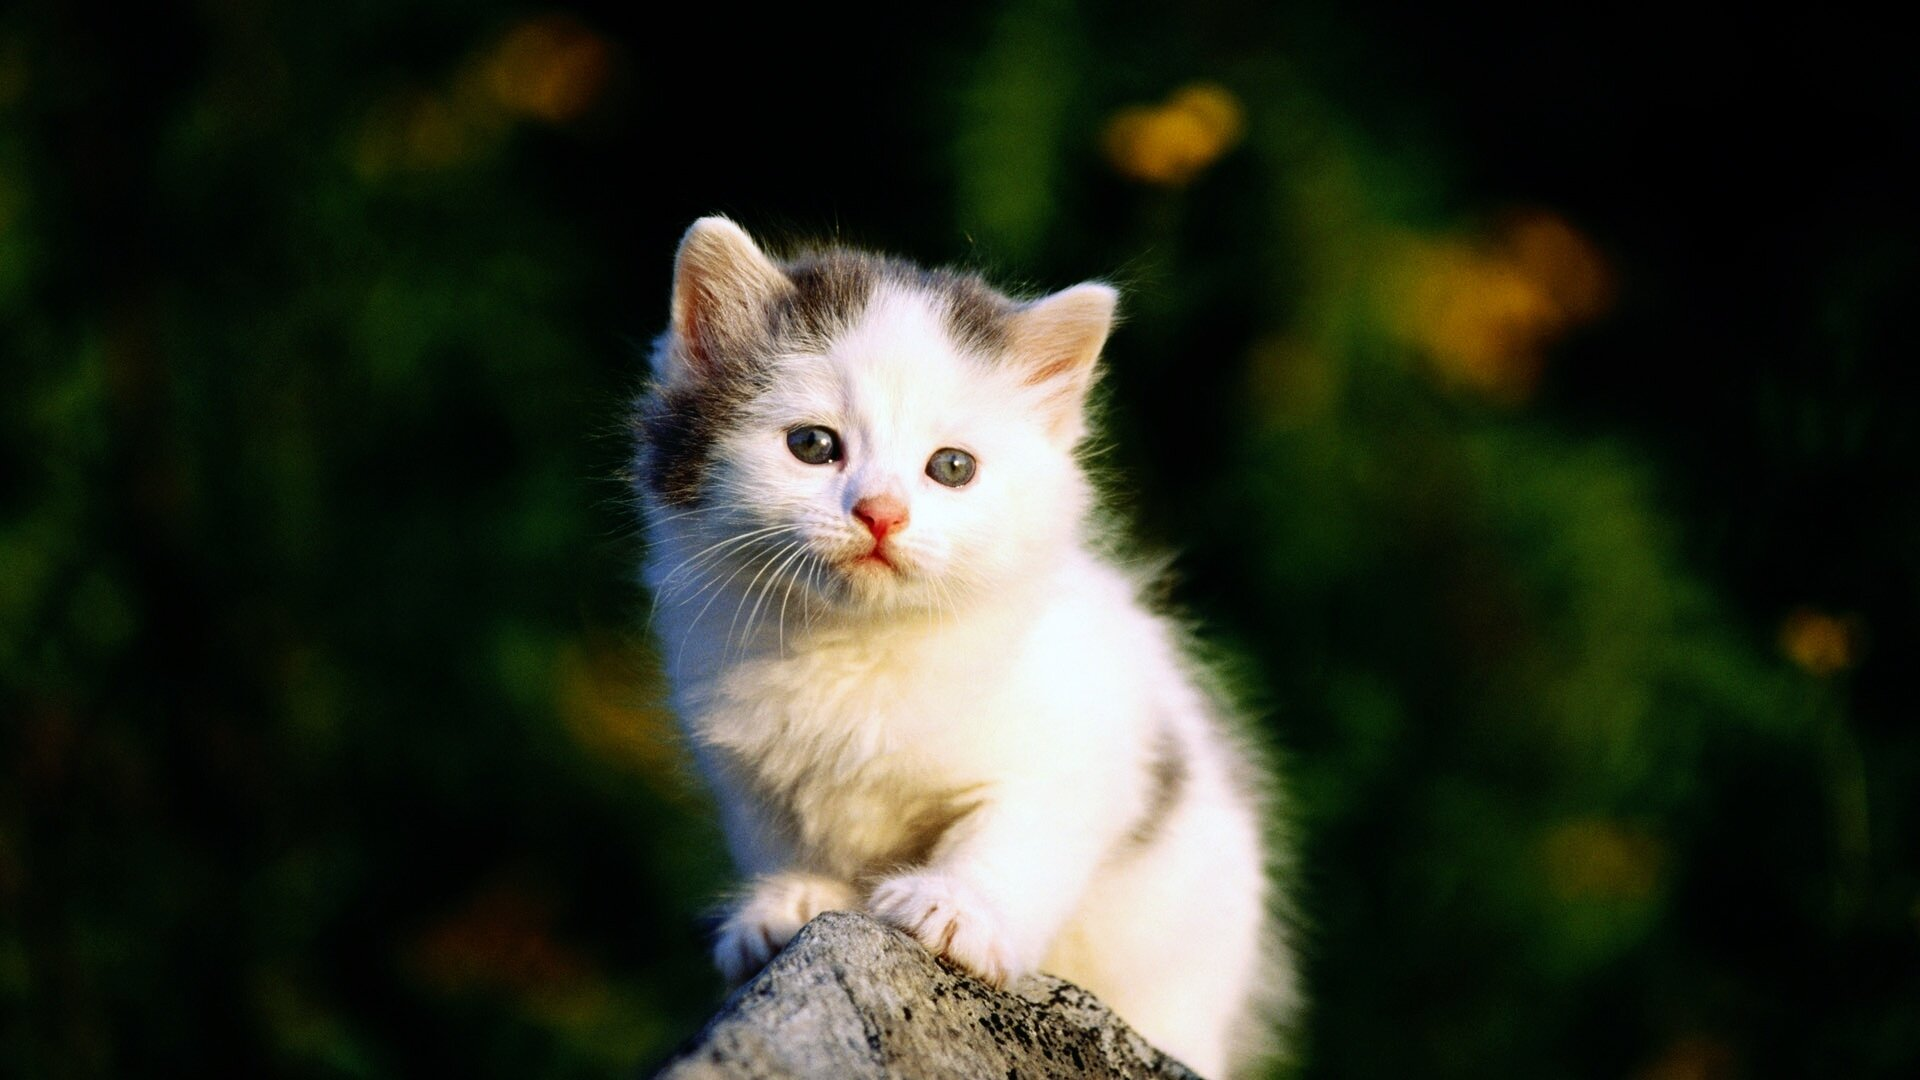 15 pictures of cute and sweet cats mostbeautifulthings